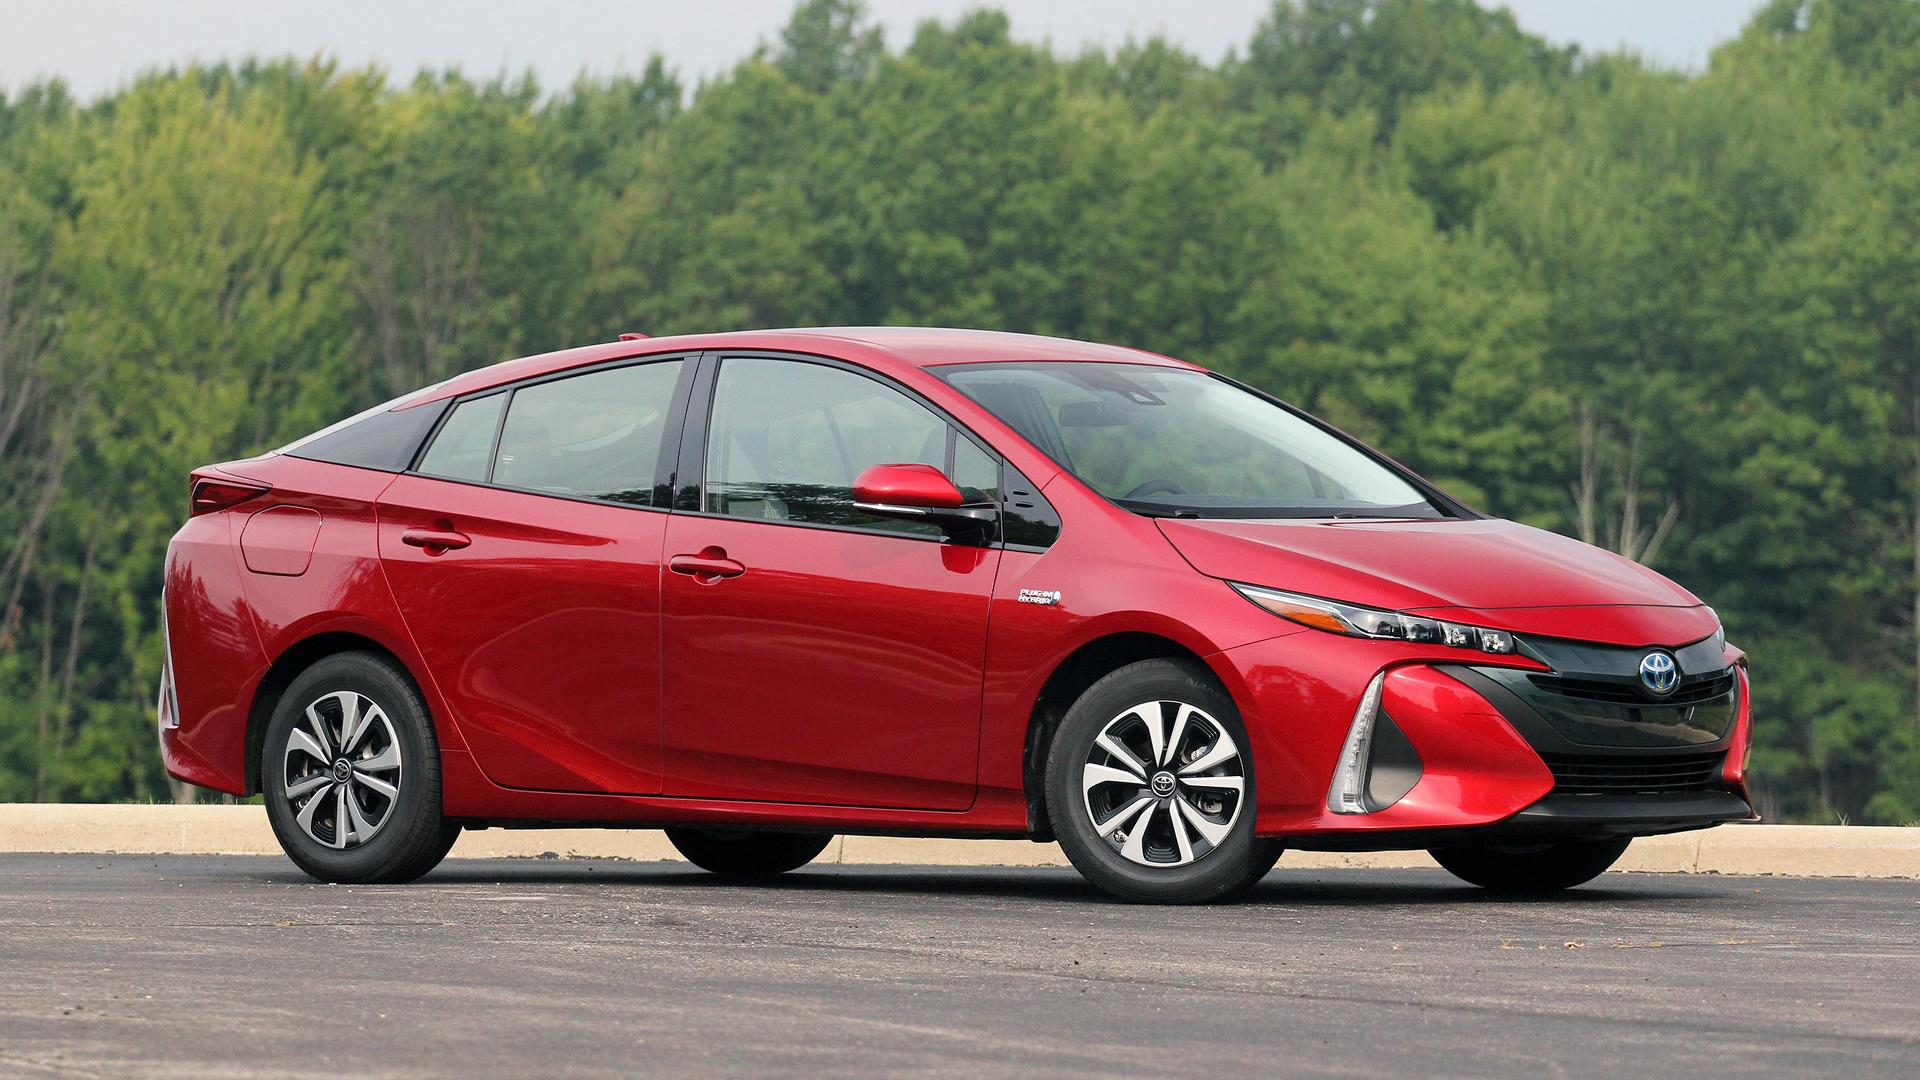 2017 toyota prius prime review the argument against cord cutting. Black Bedroom Furniture Sets. Home Design Ideas